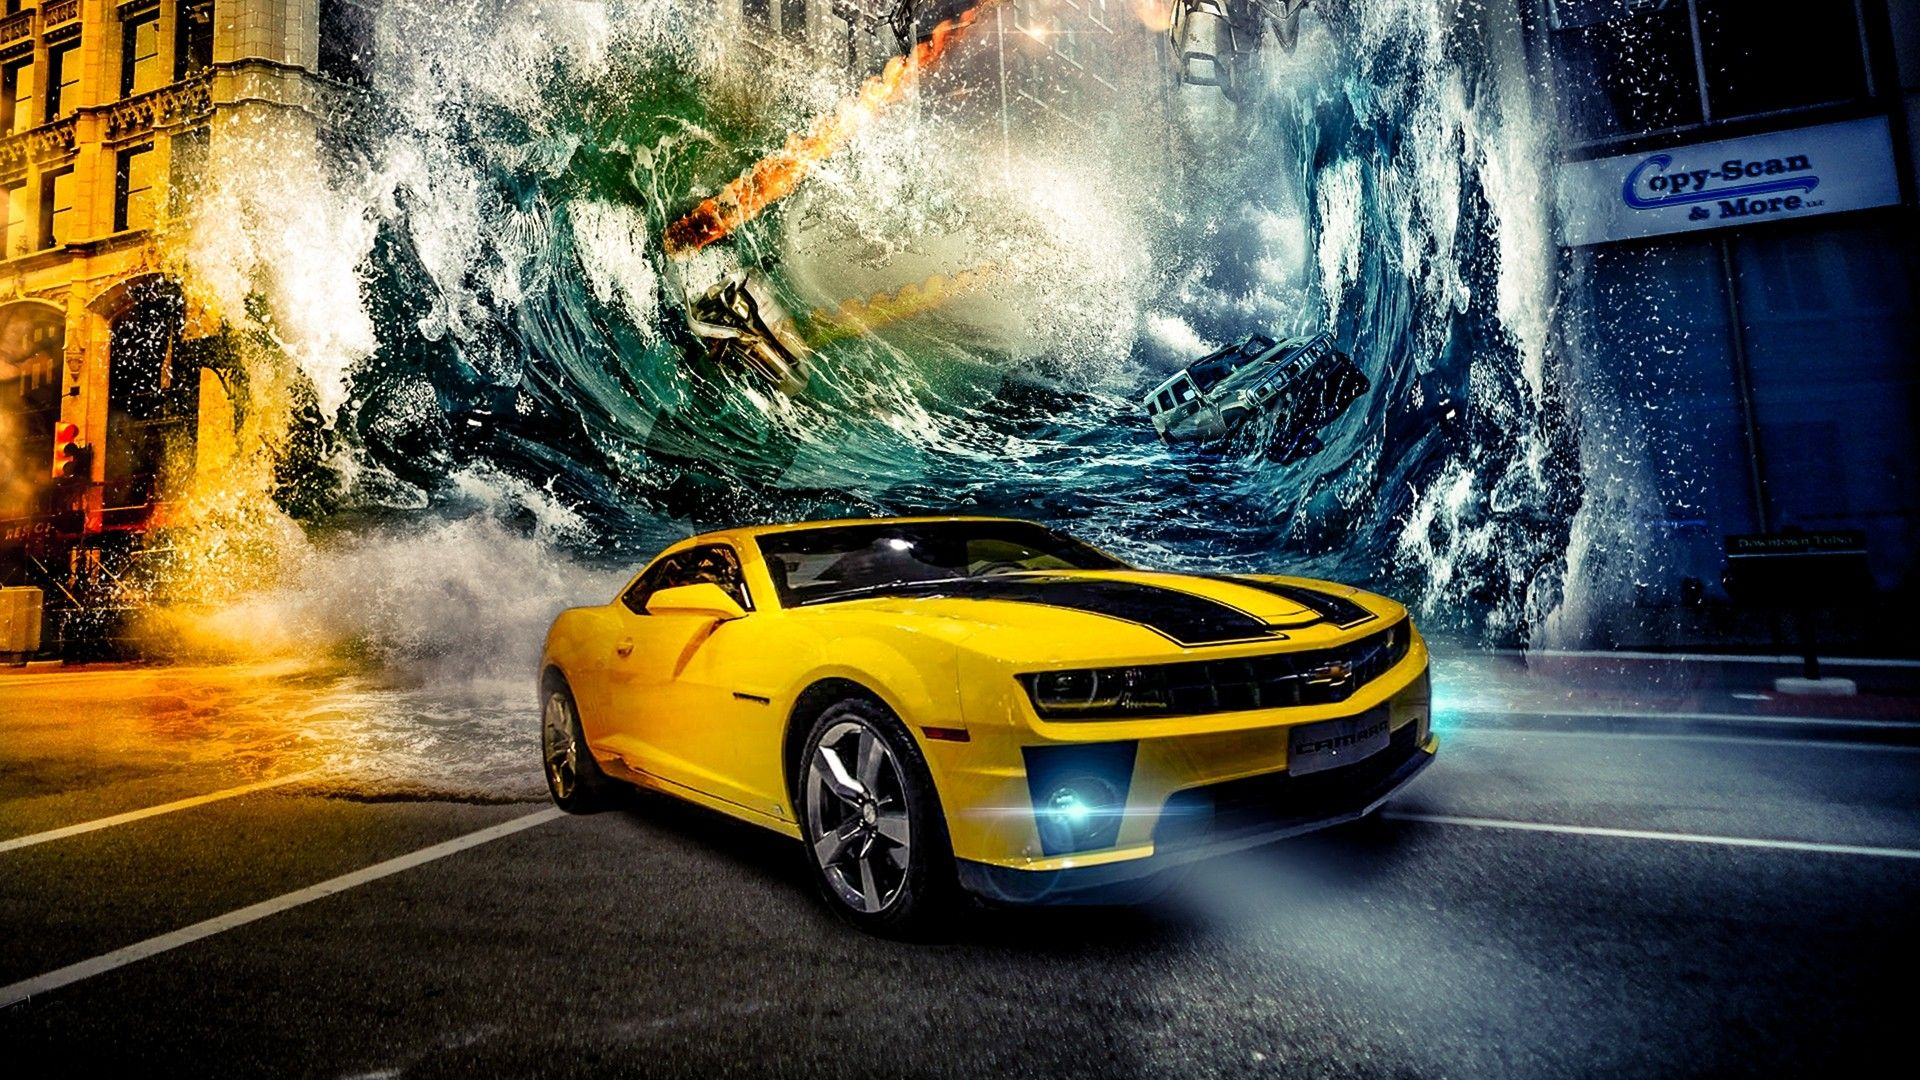 Yellow Car Wallpaper Hd Cars Wall Papers Pinterest